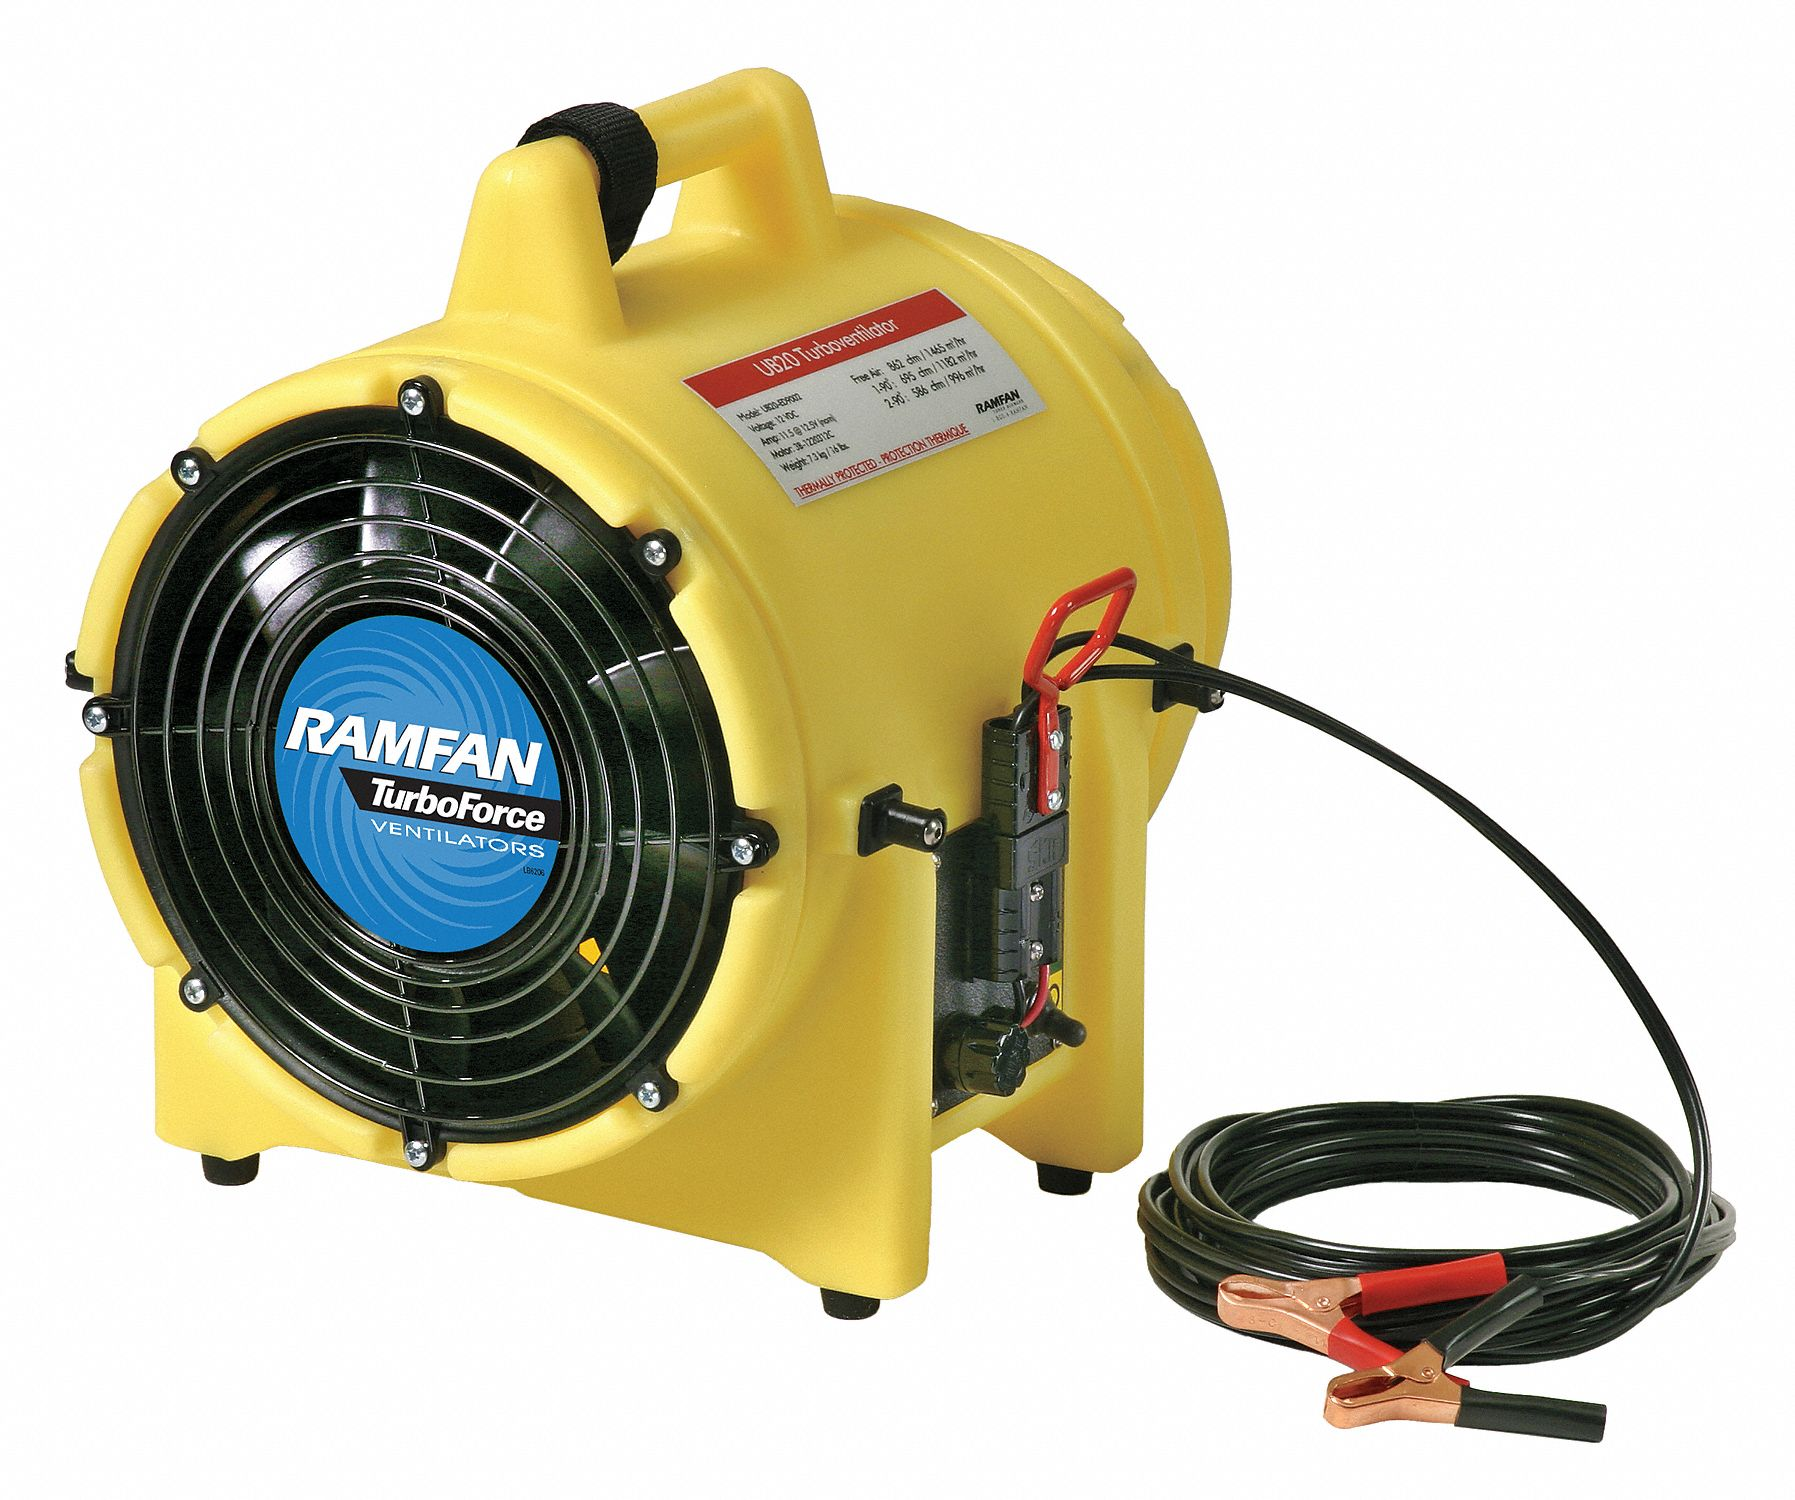 Confined Space Blowers And Fans : Electric confined space fans and blowers tools for shop